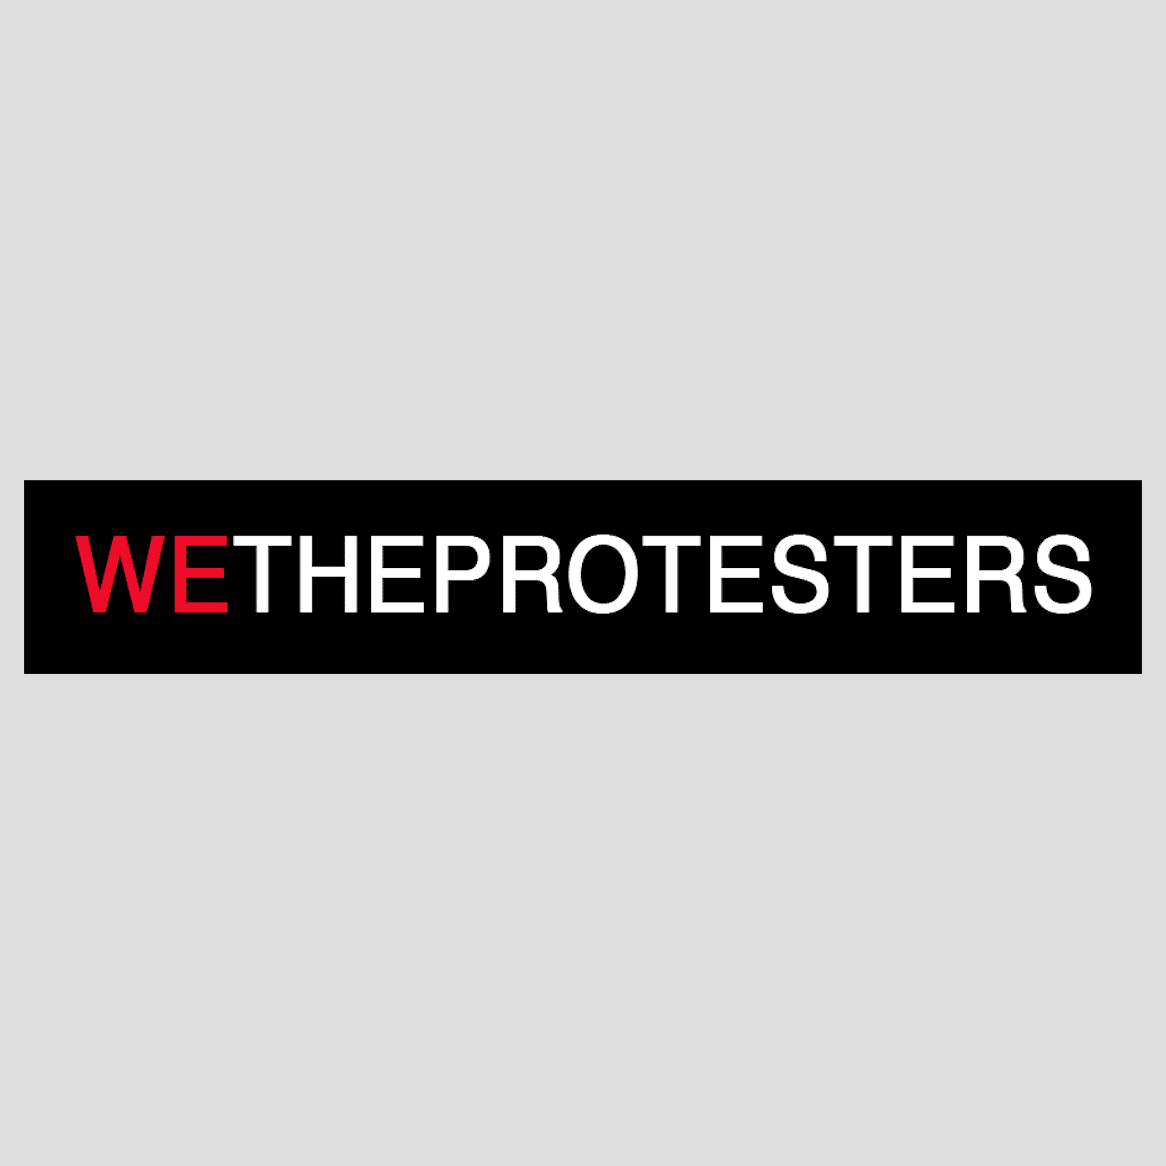 We The Protesters logo